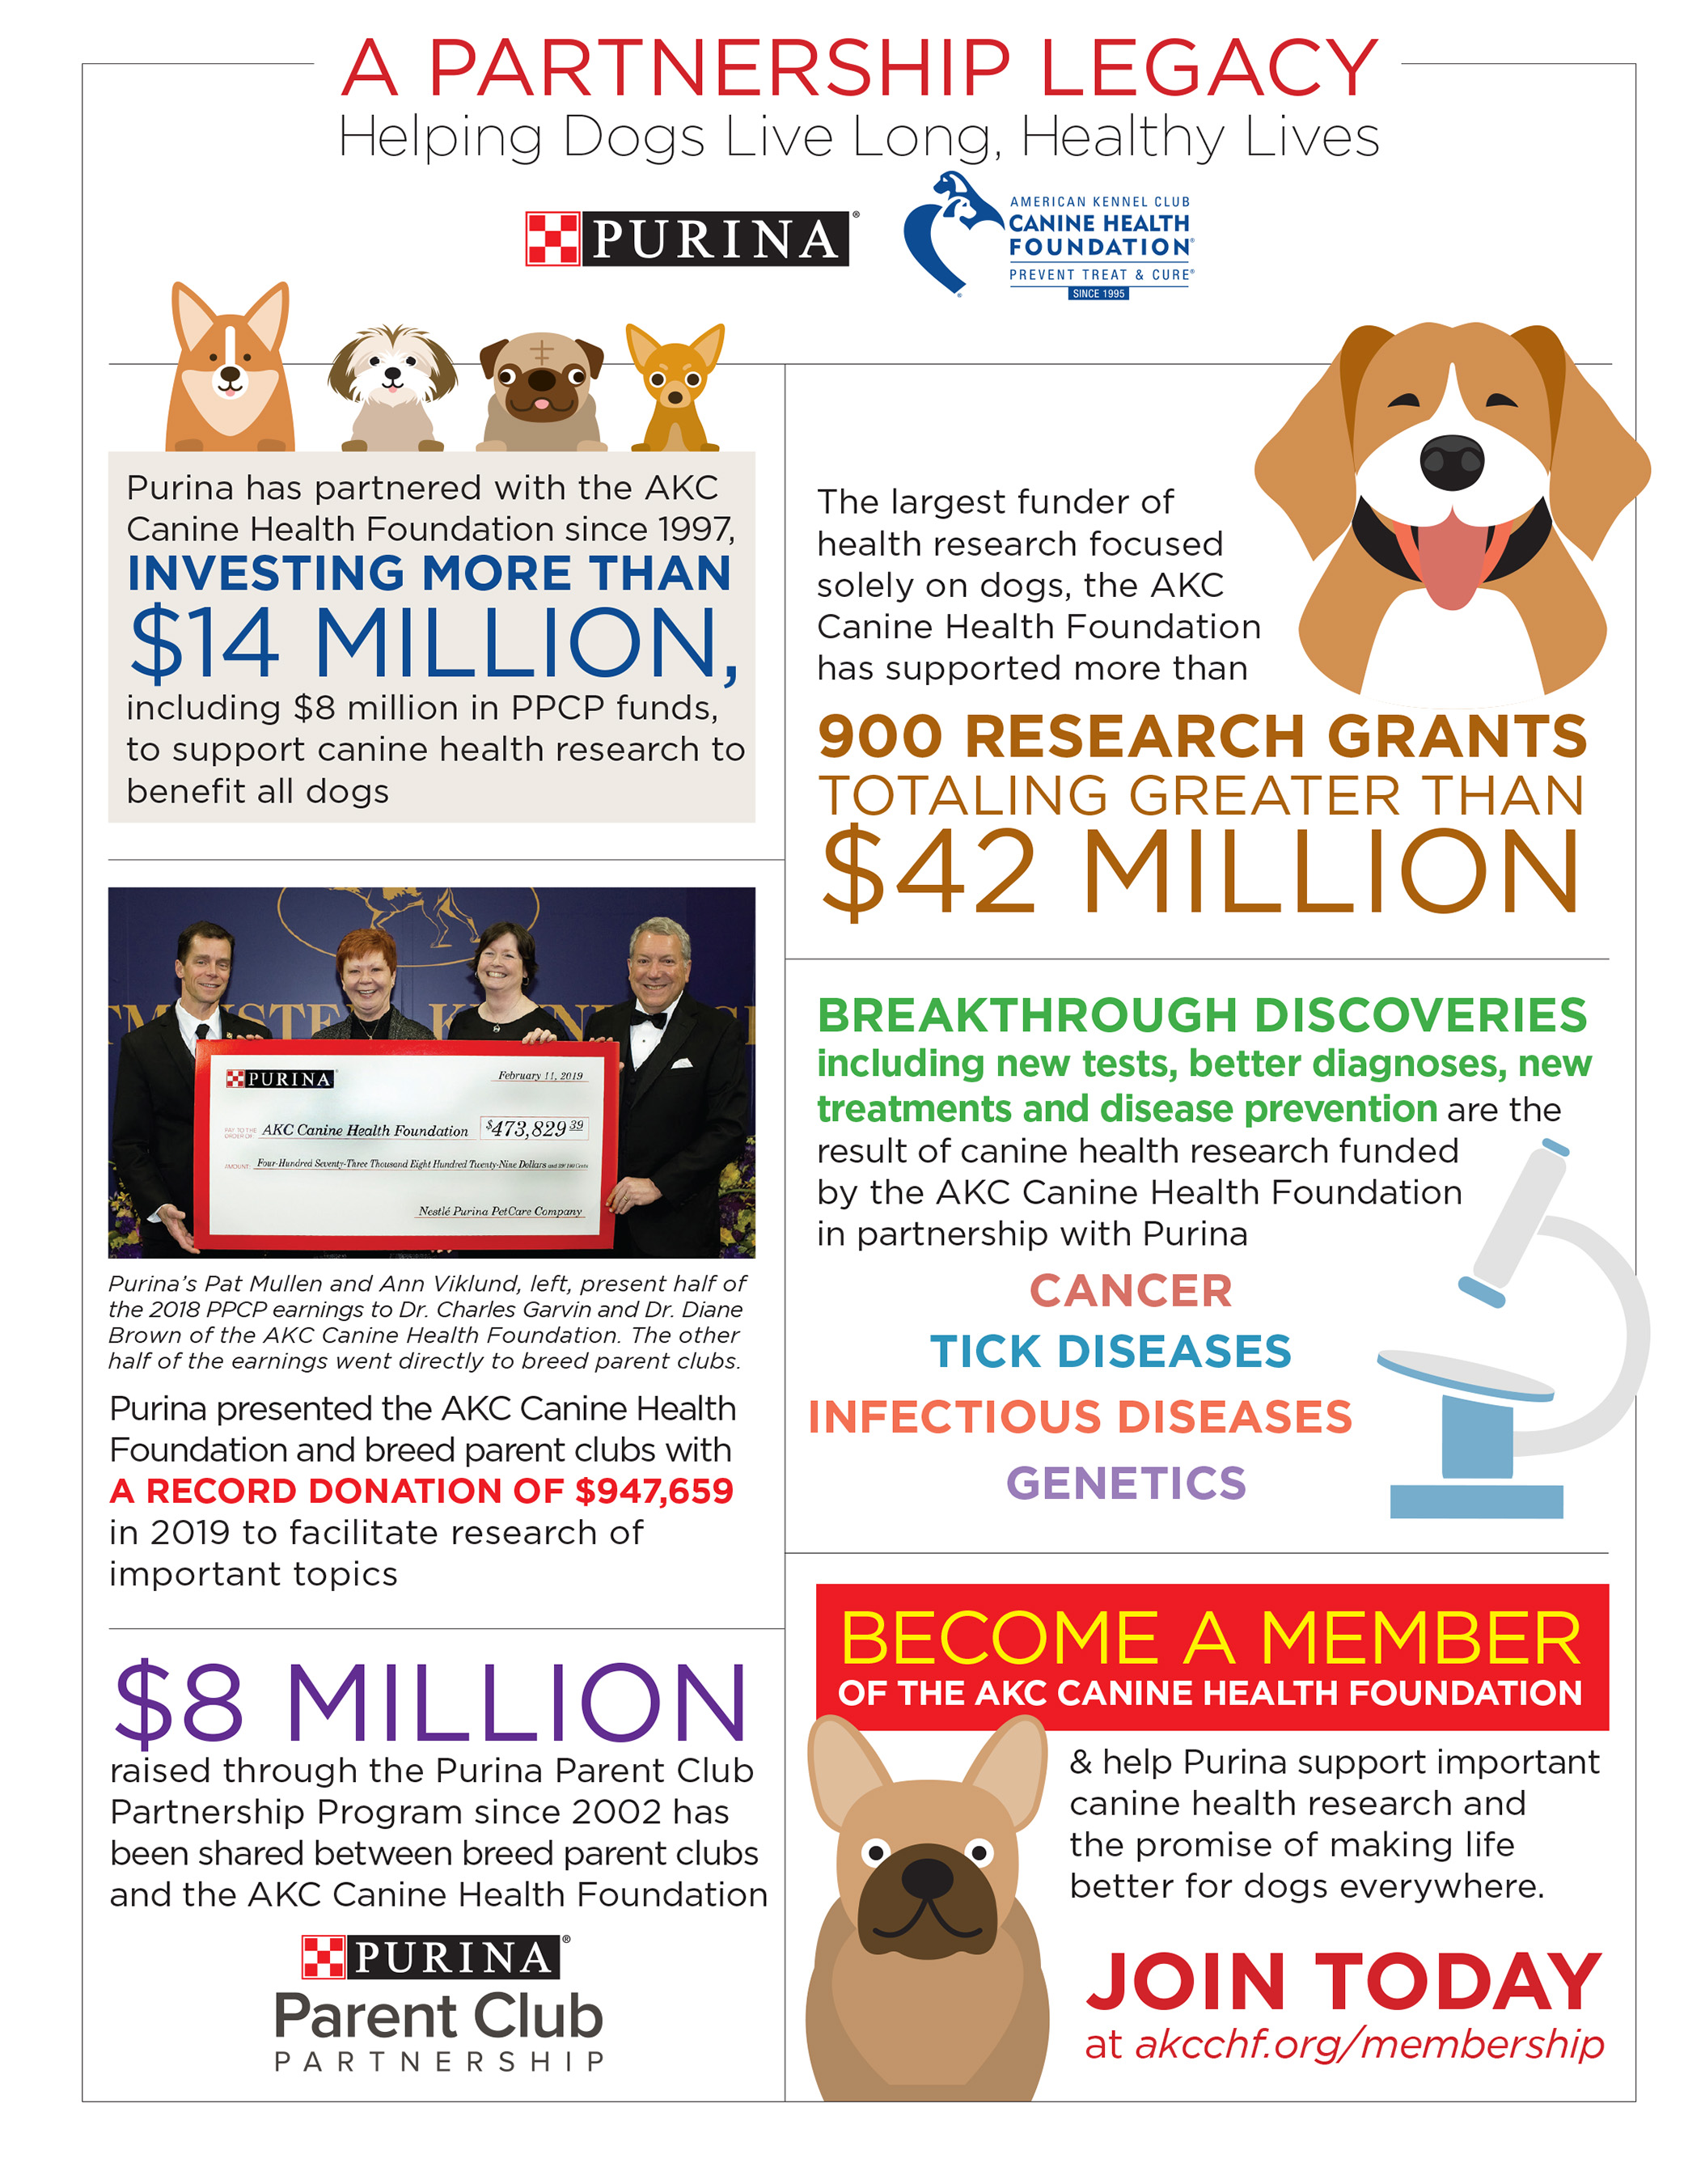 A Partnership Legacy Infographic